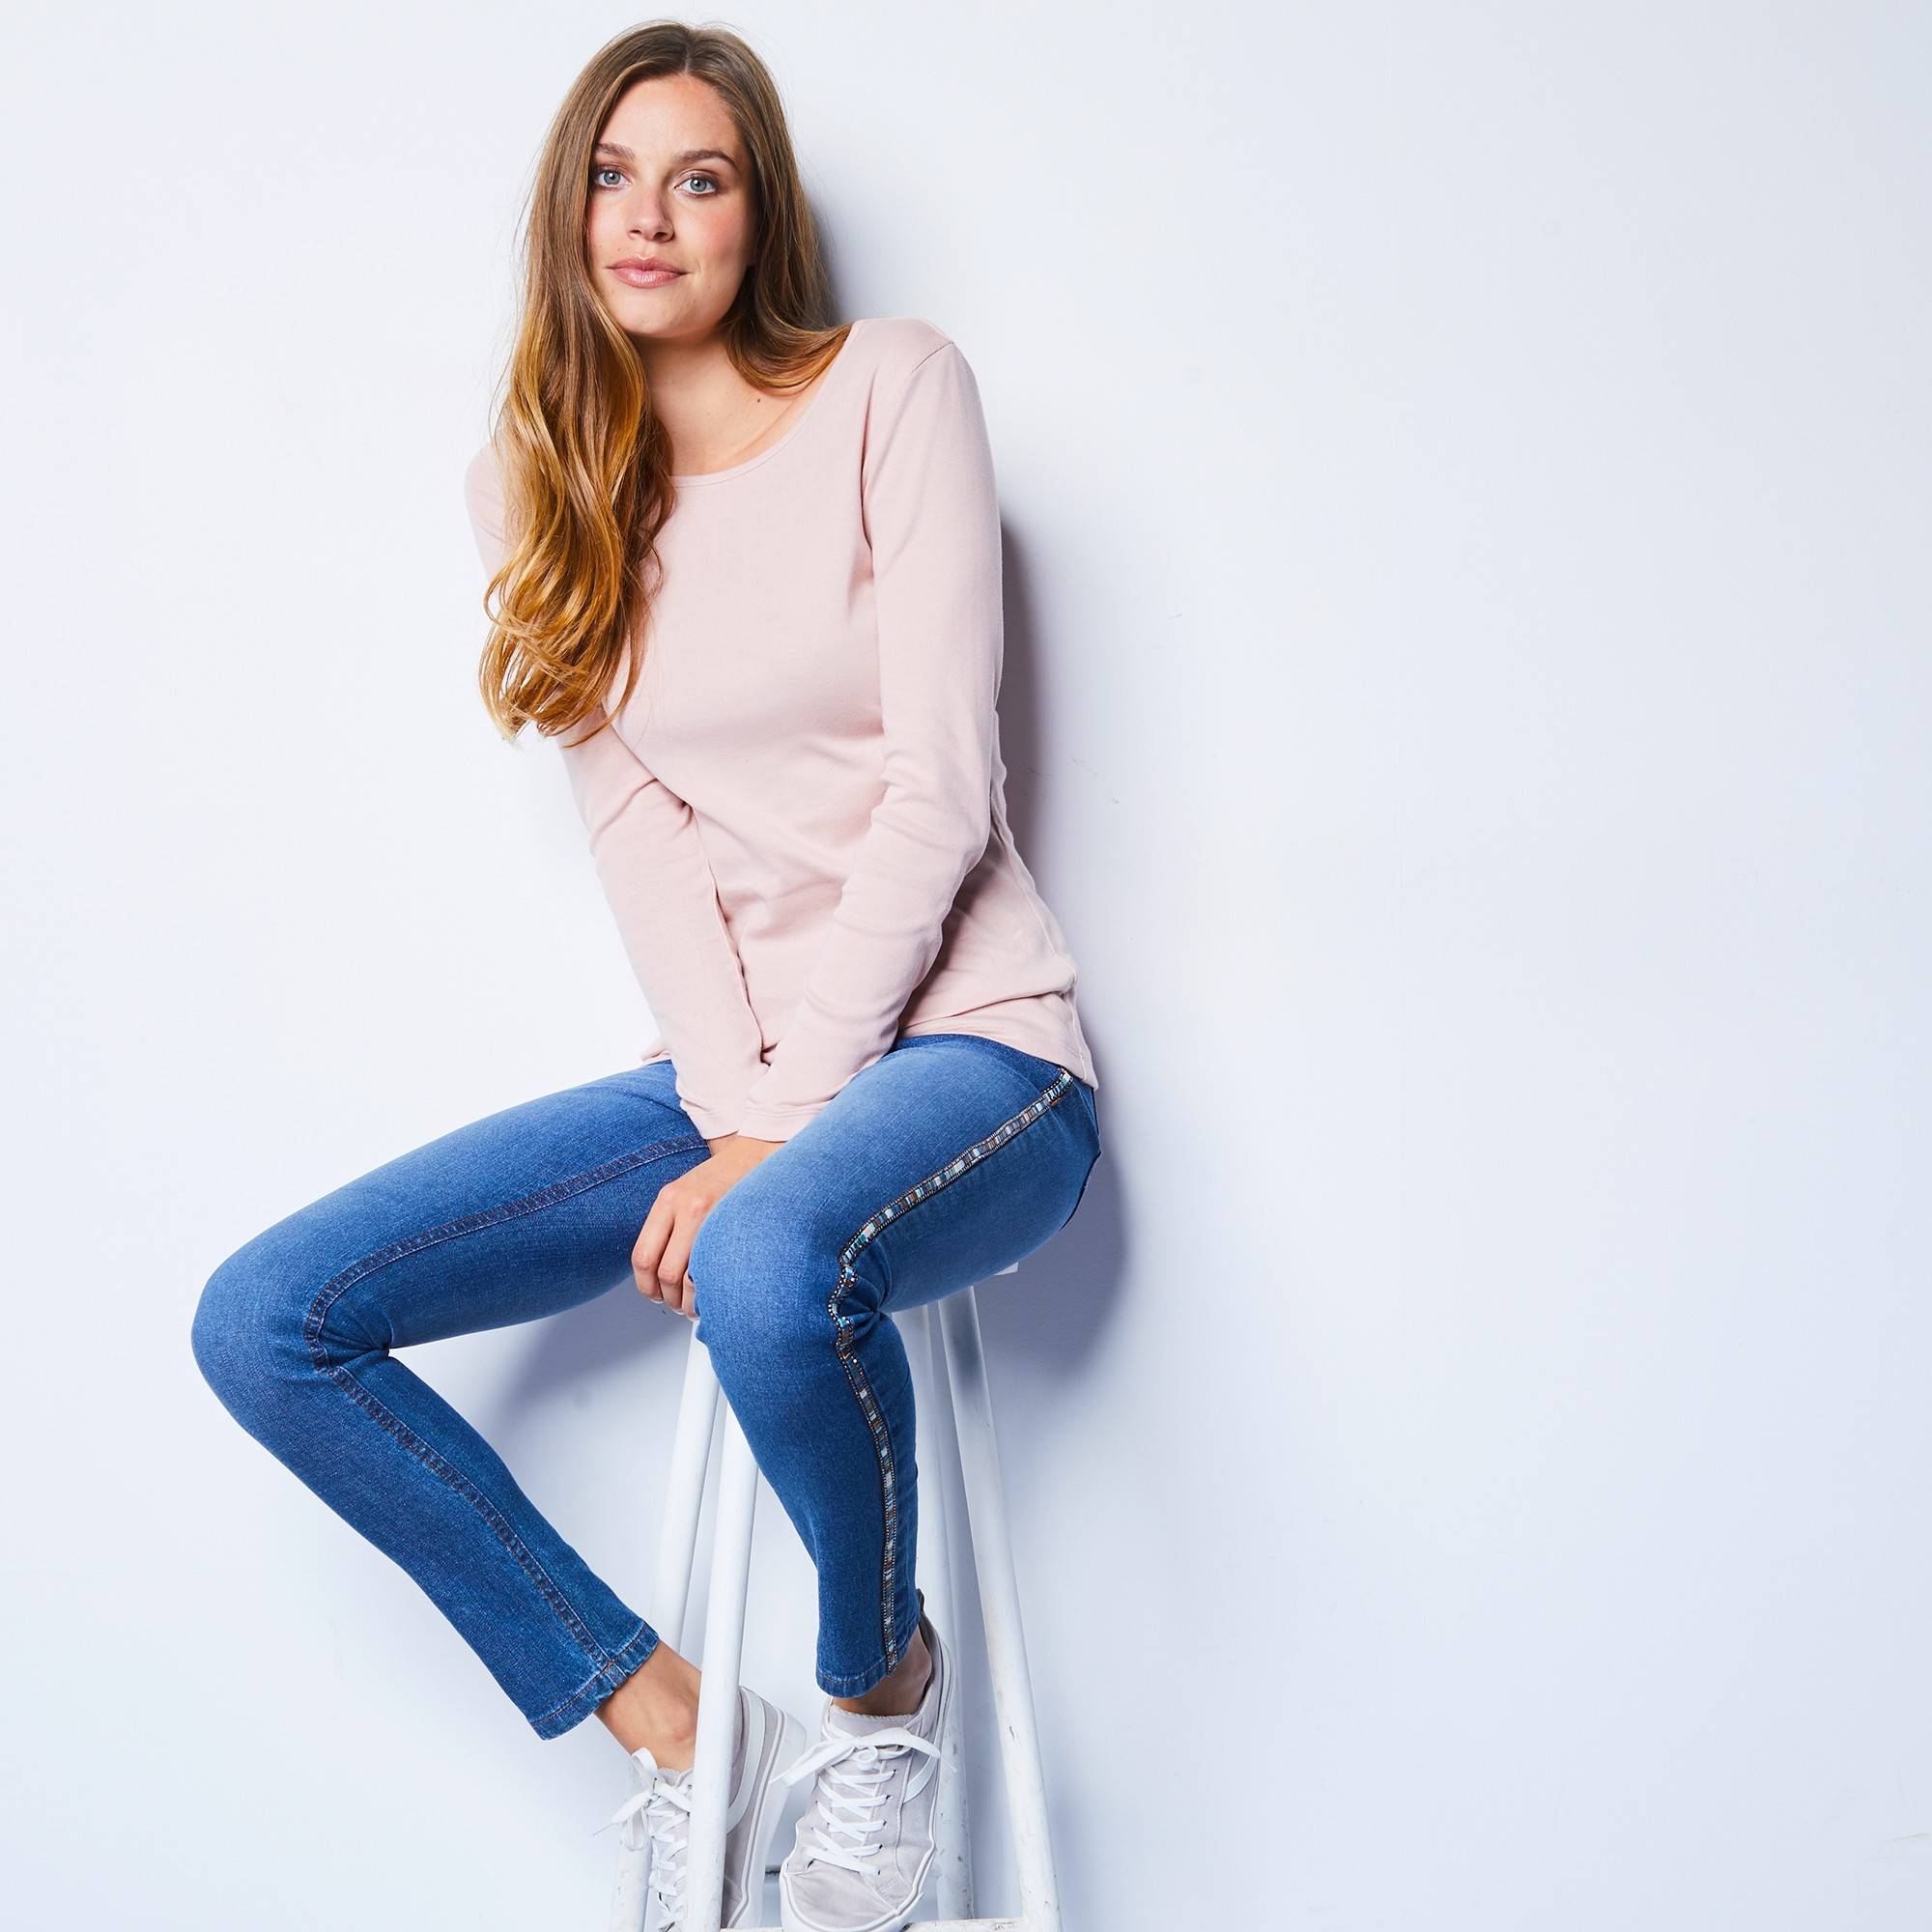 Tee-shirt manches longues - rose poudré - Rose - Taille : 52 - Blancheporte